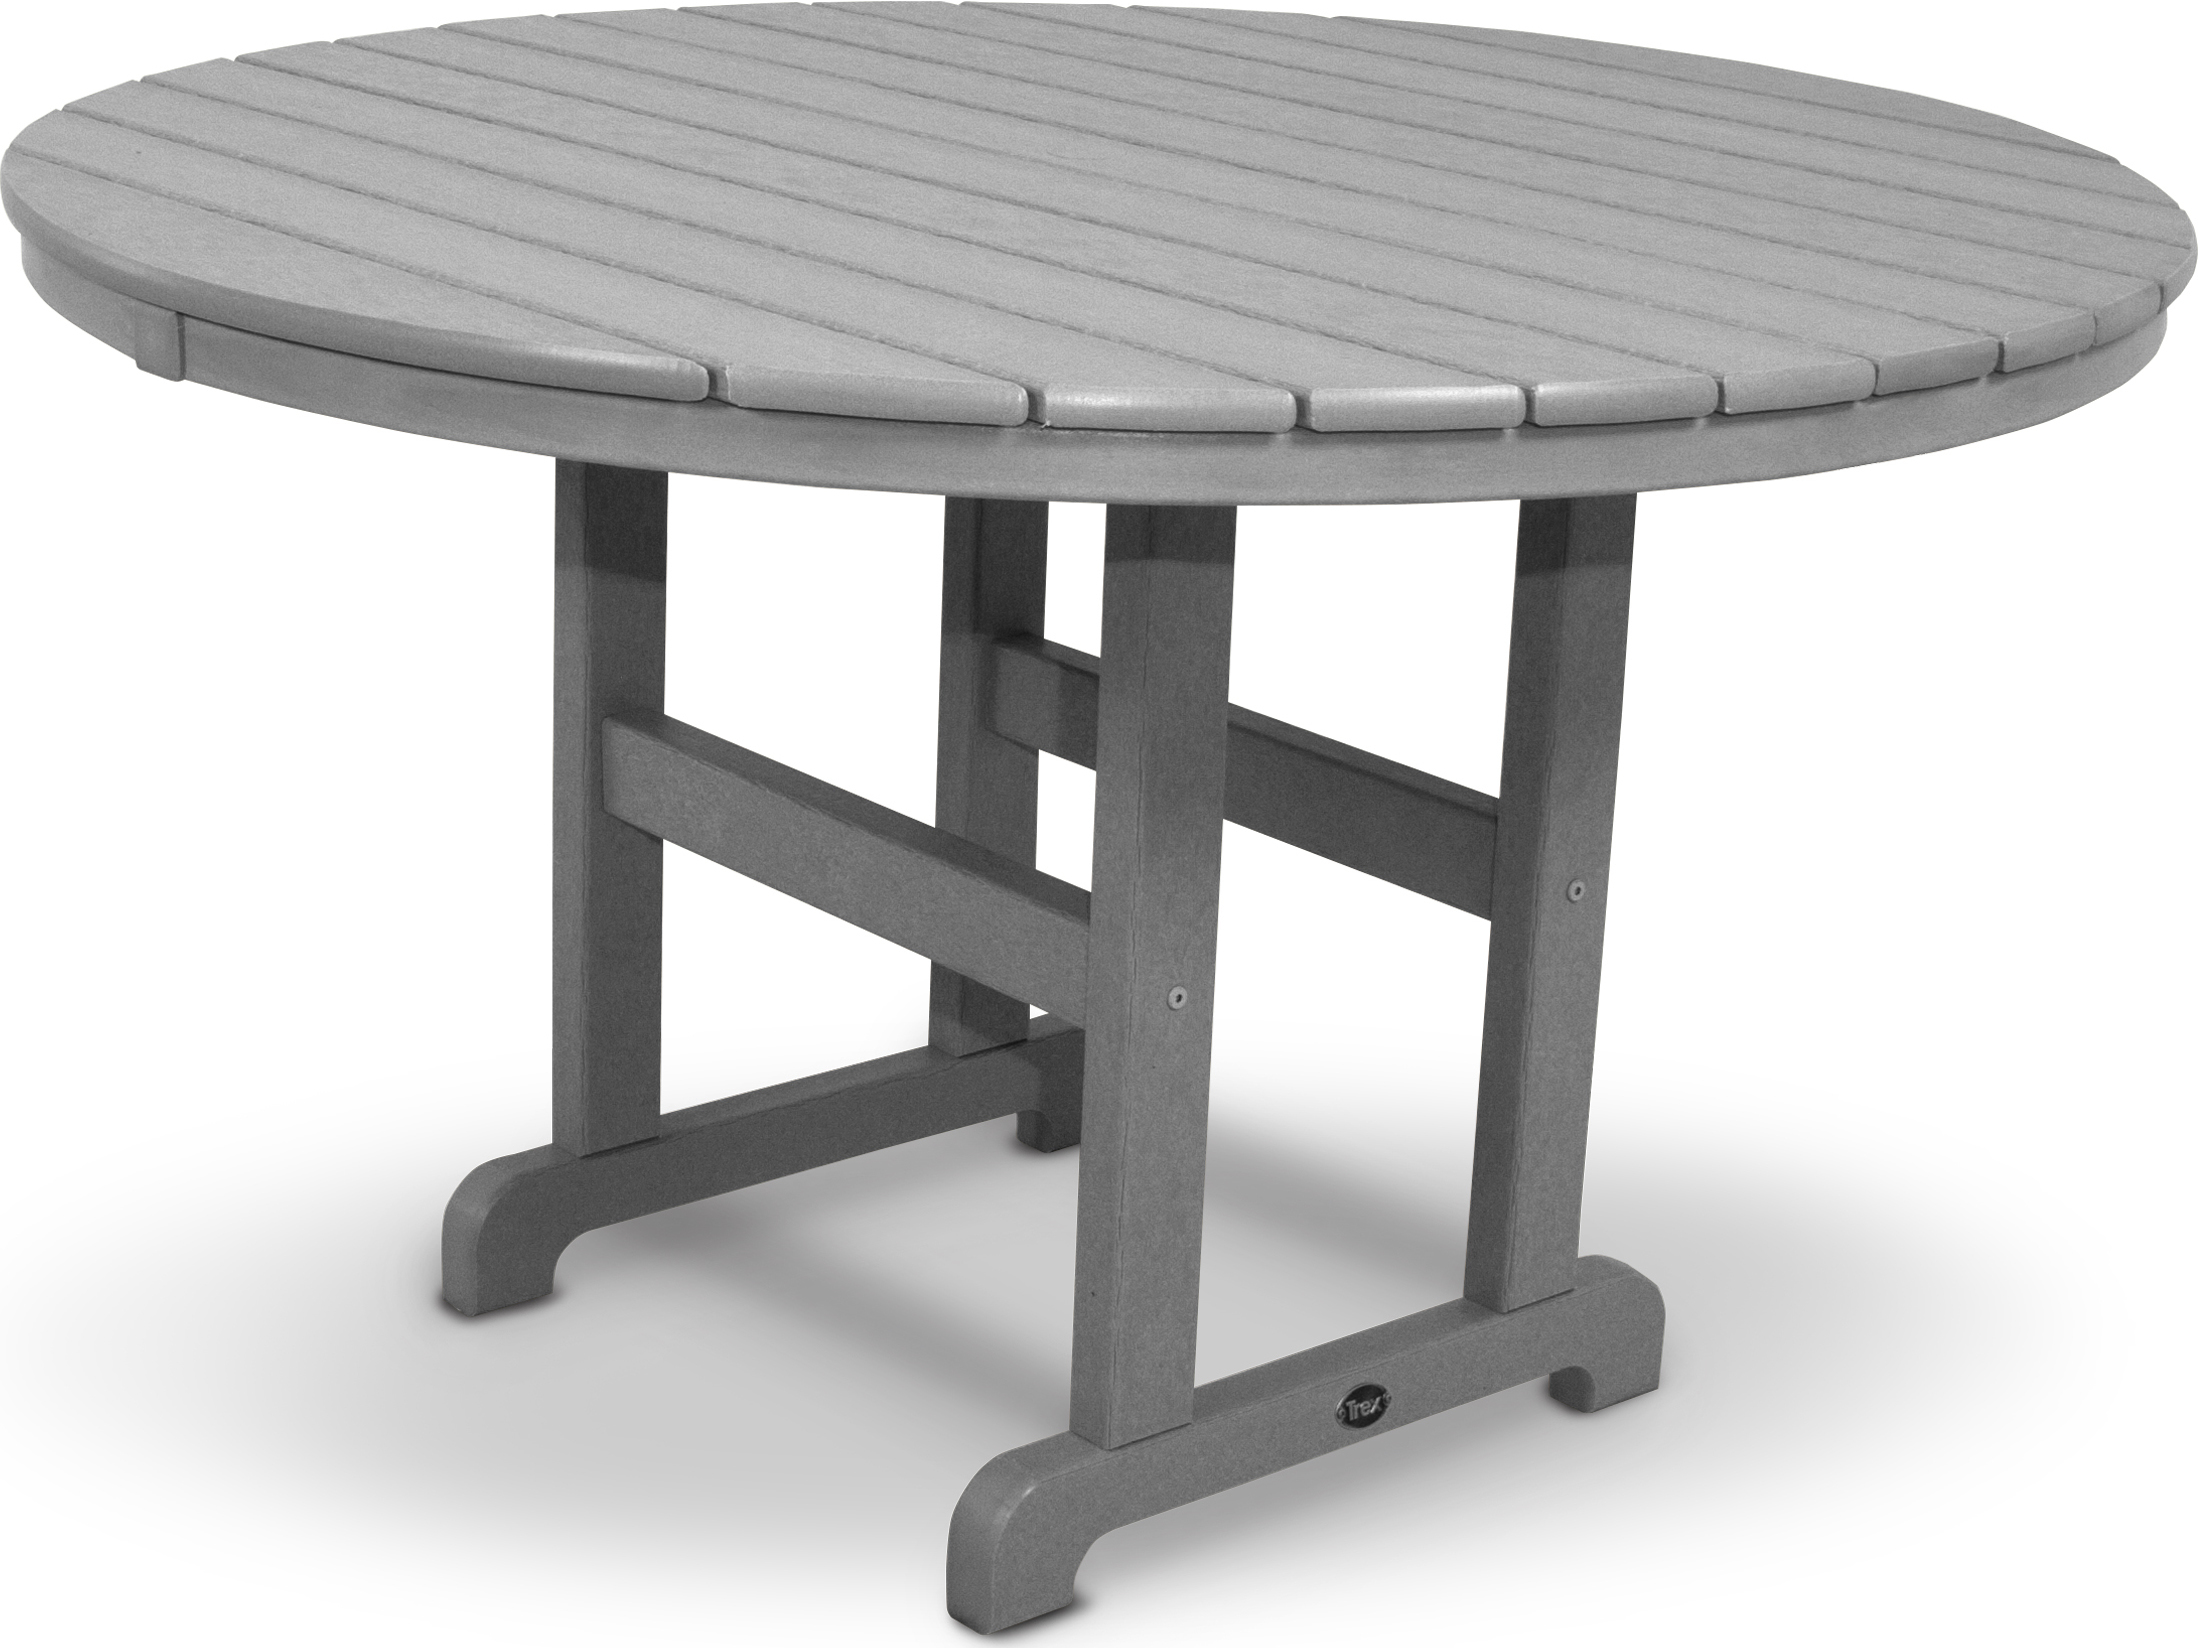 trex monterey bay recycled plastic 48 round dining table